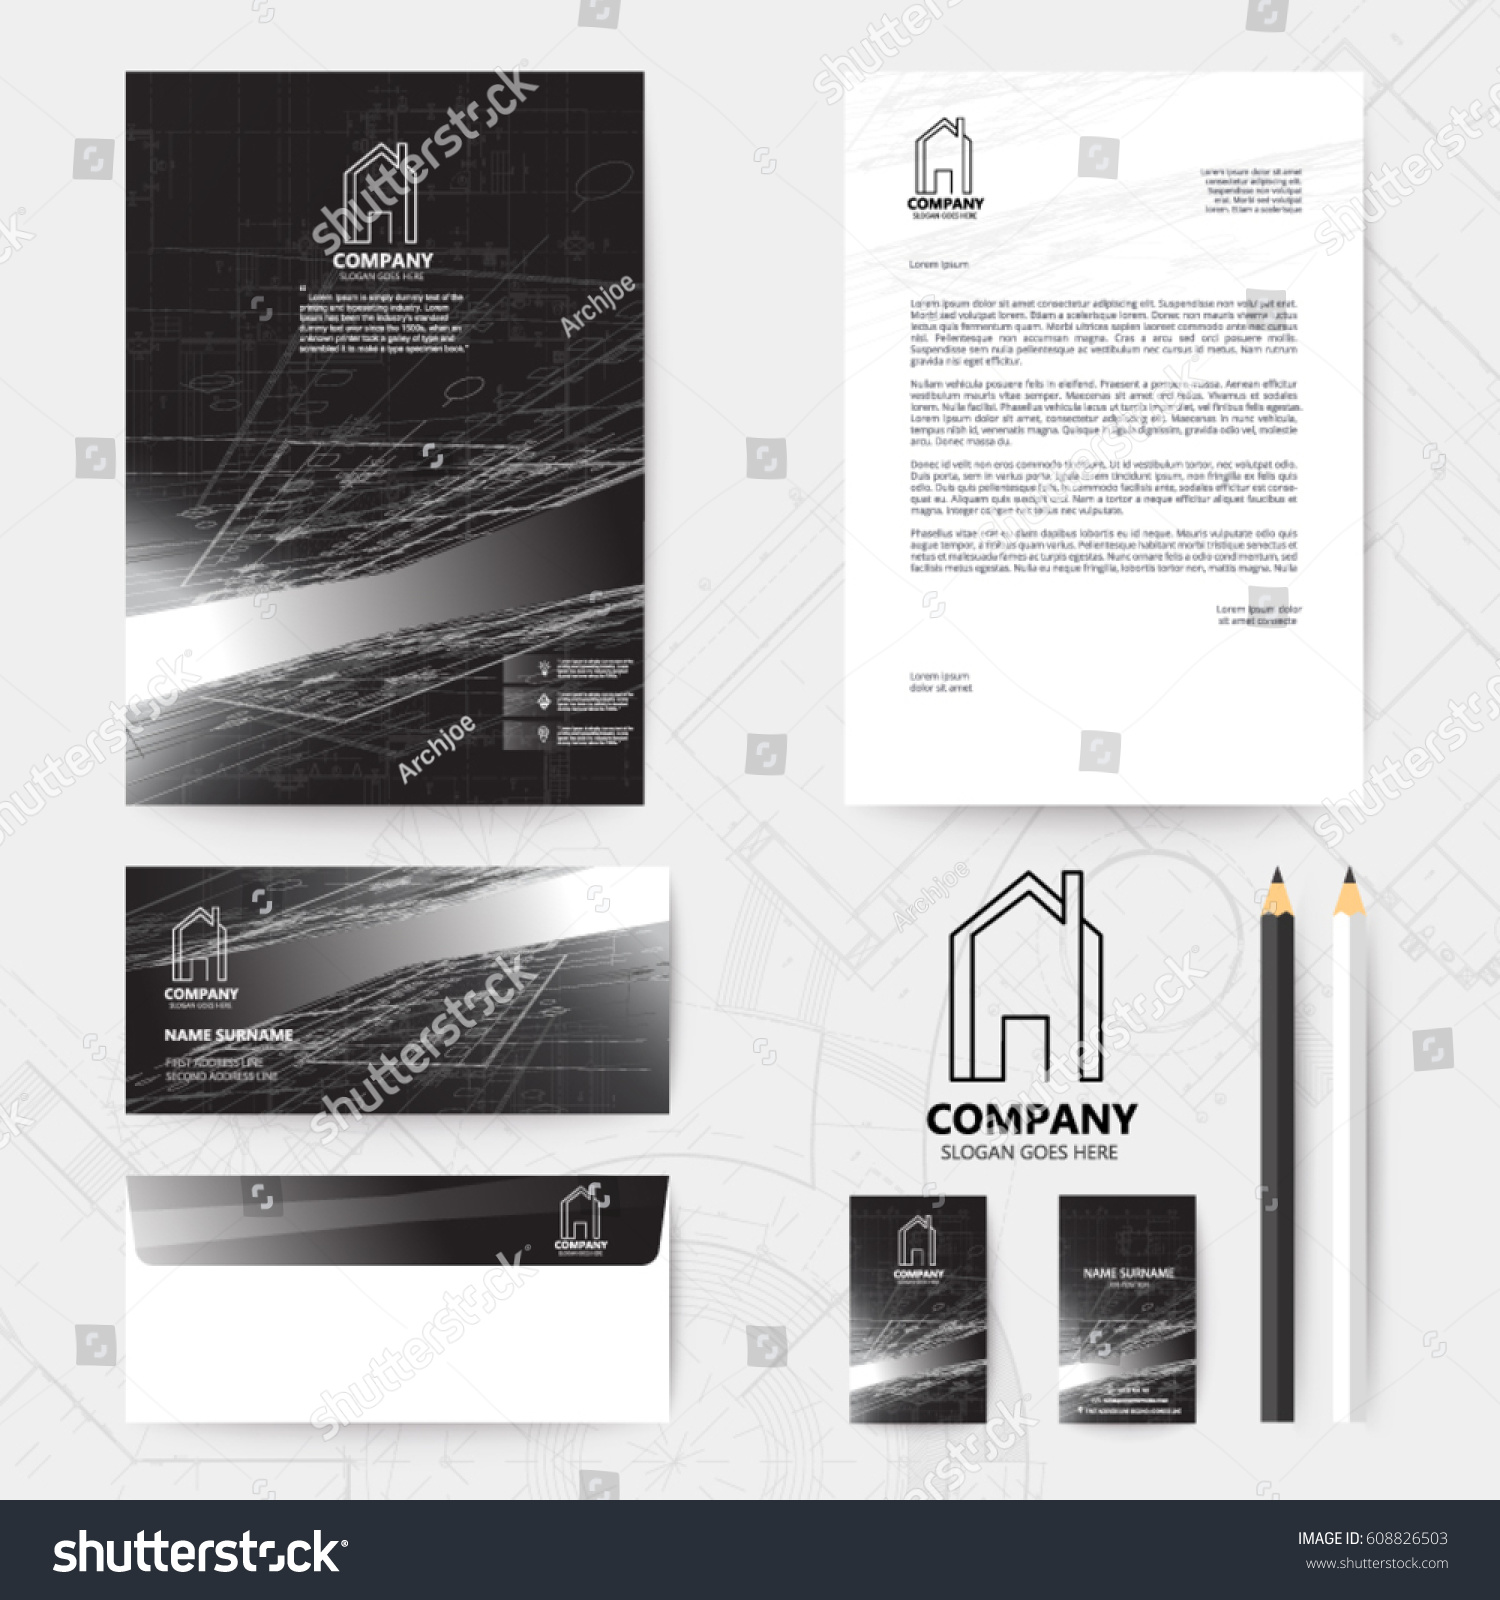 Corporate identity template design blueprint background stock vector corporate identity template design with blueprint background spacecraft vector illustration malvernweather Image collections